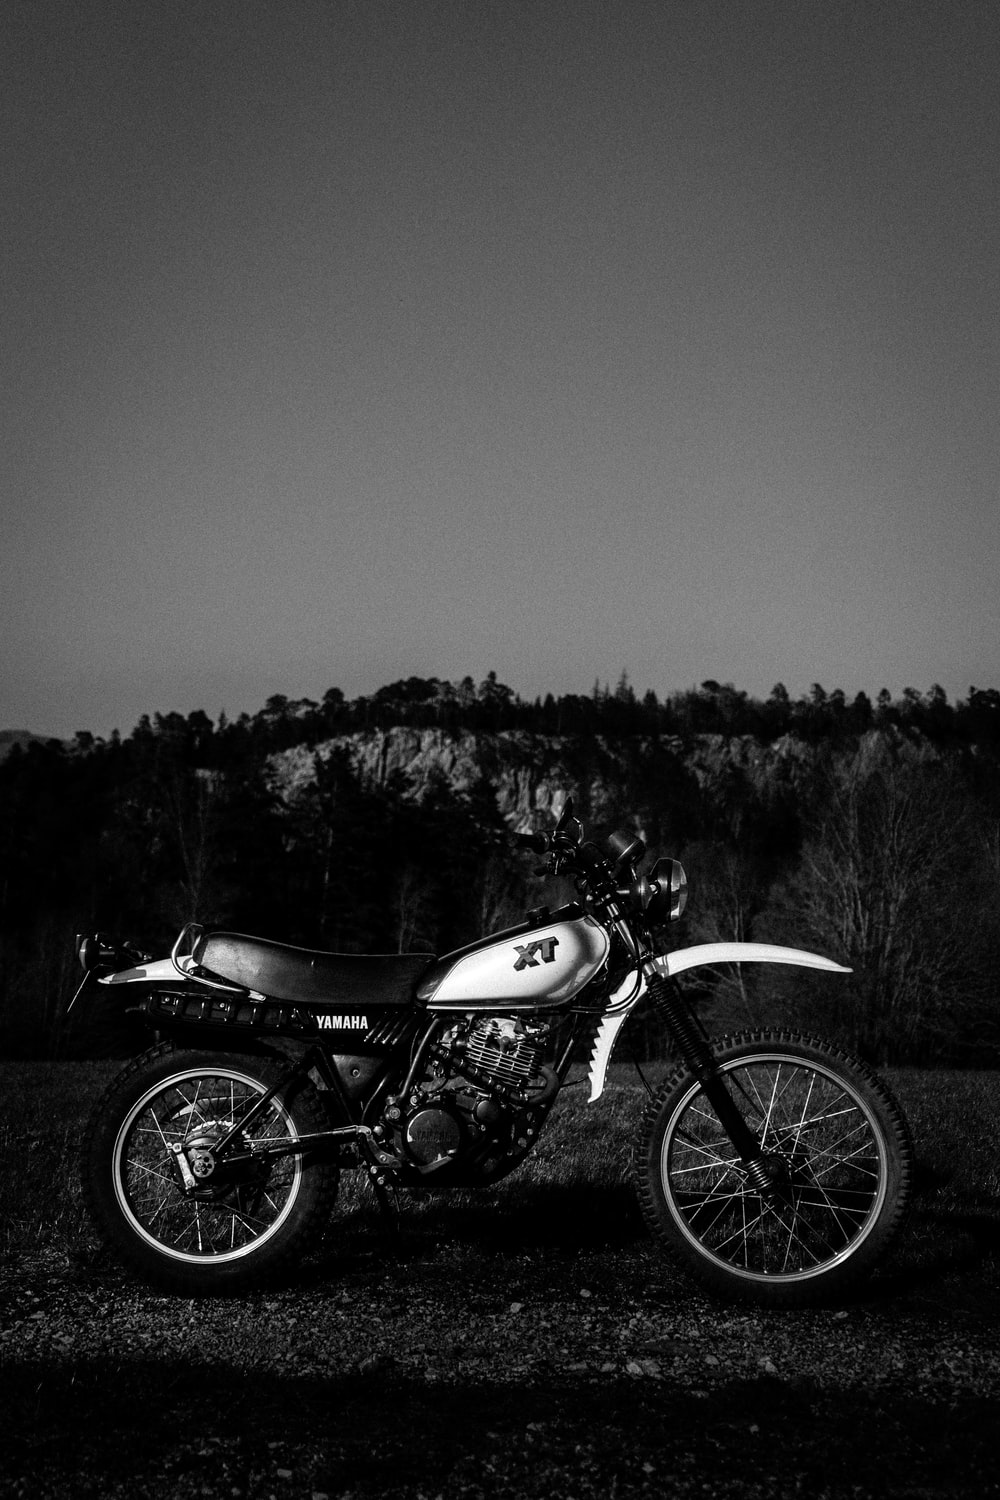 grayscale photo of motorcycle near trees